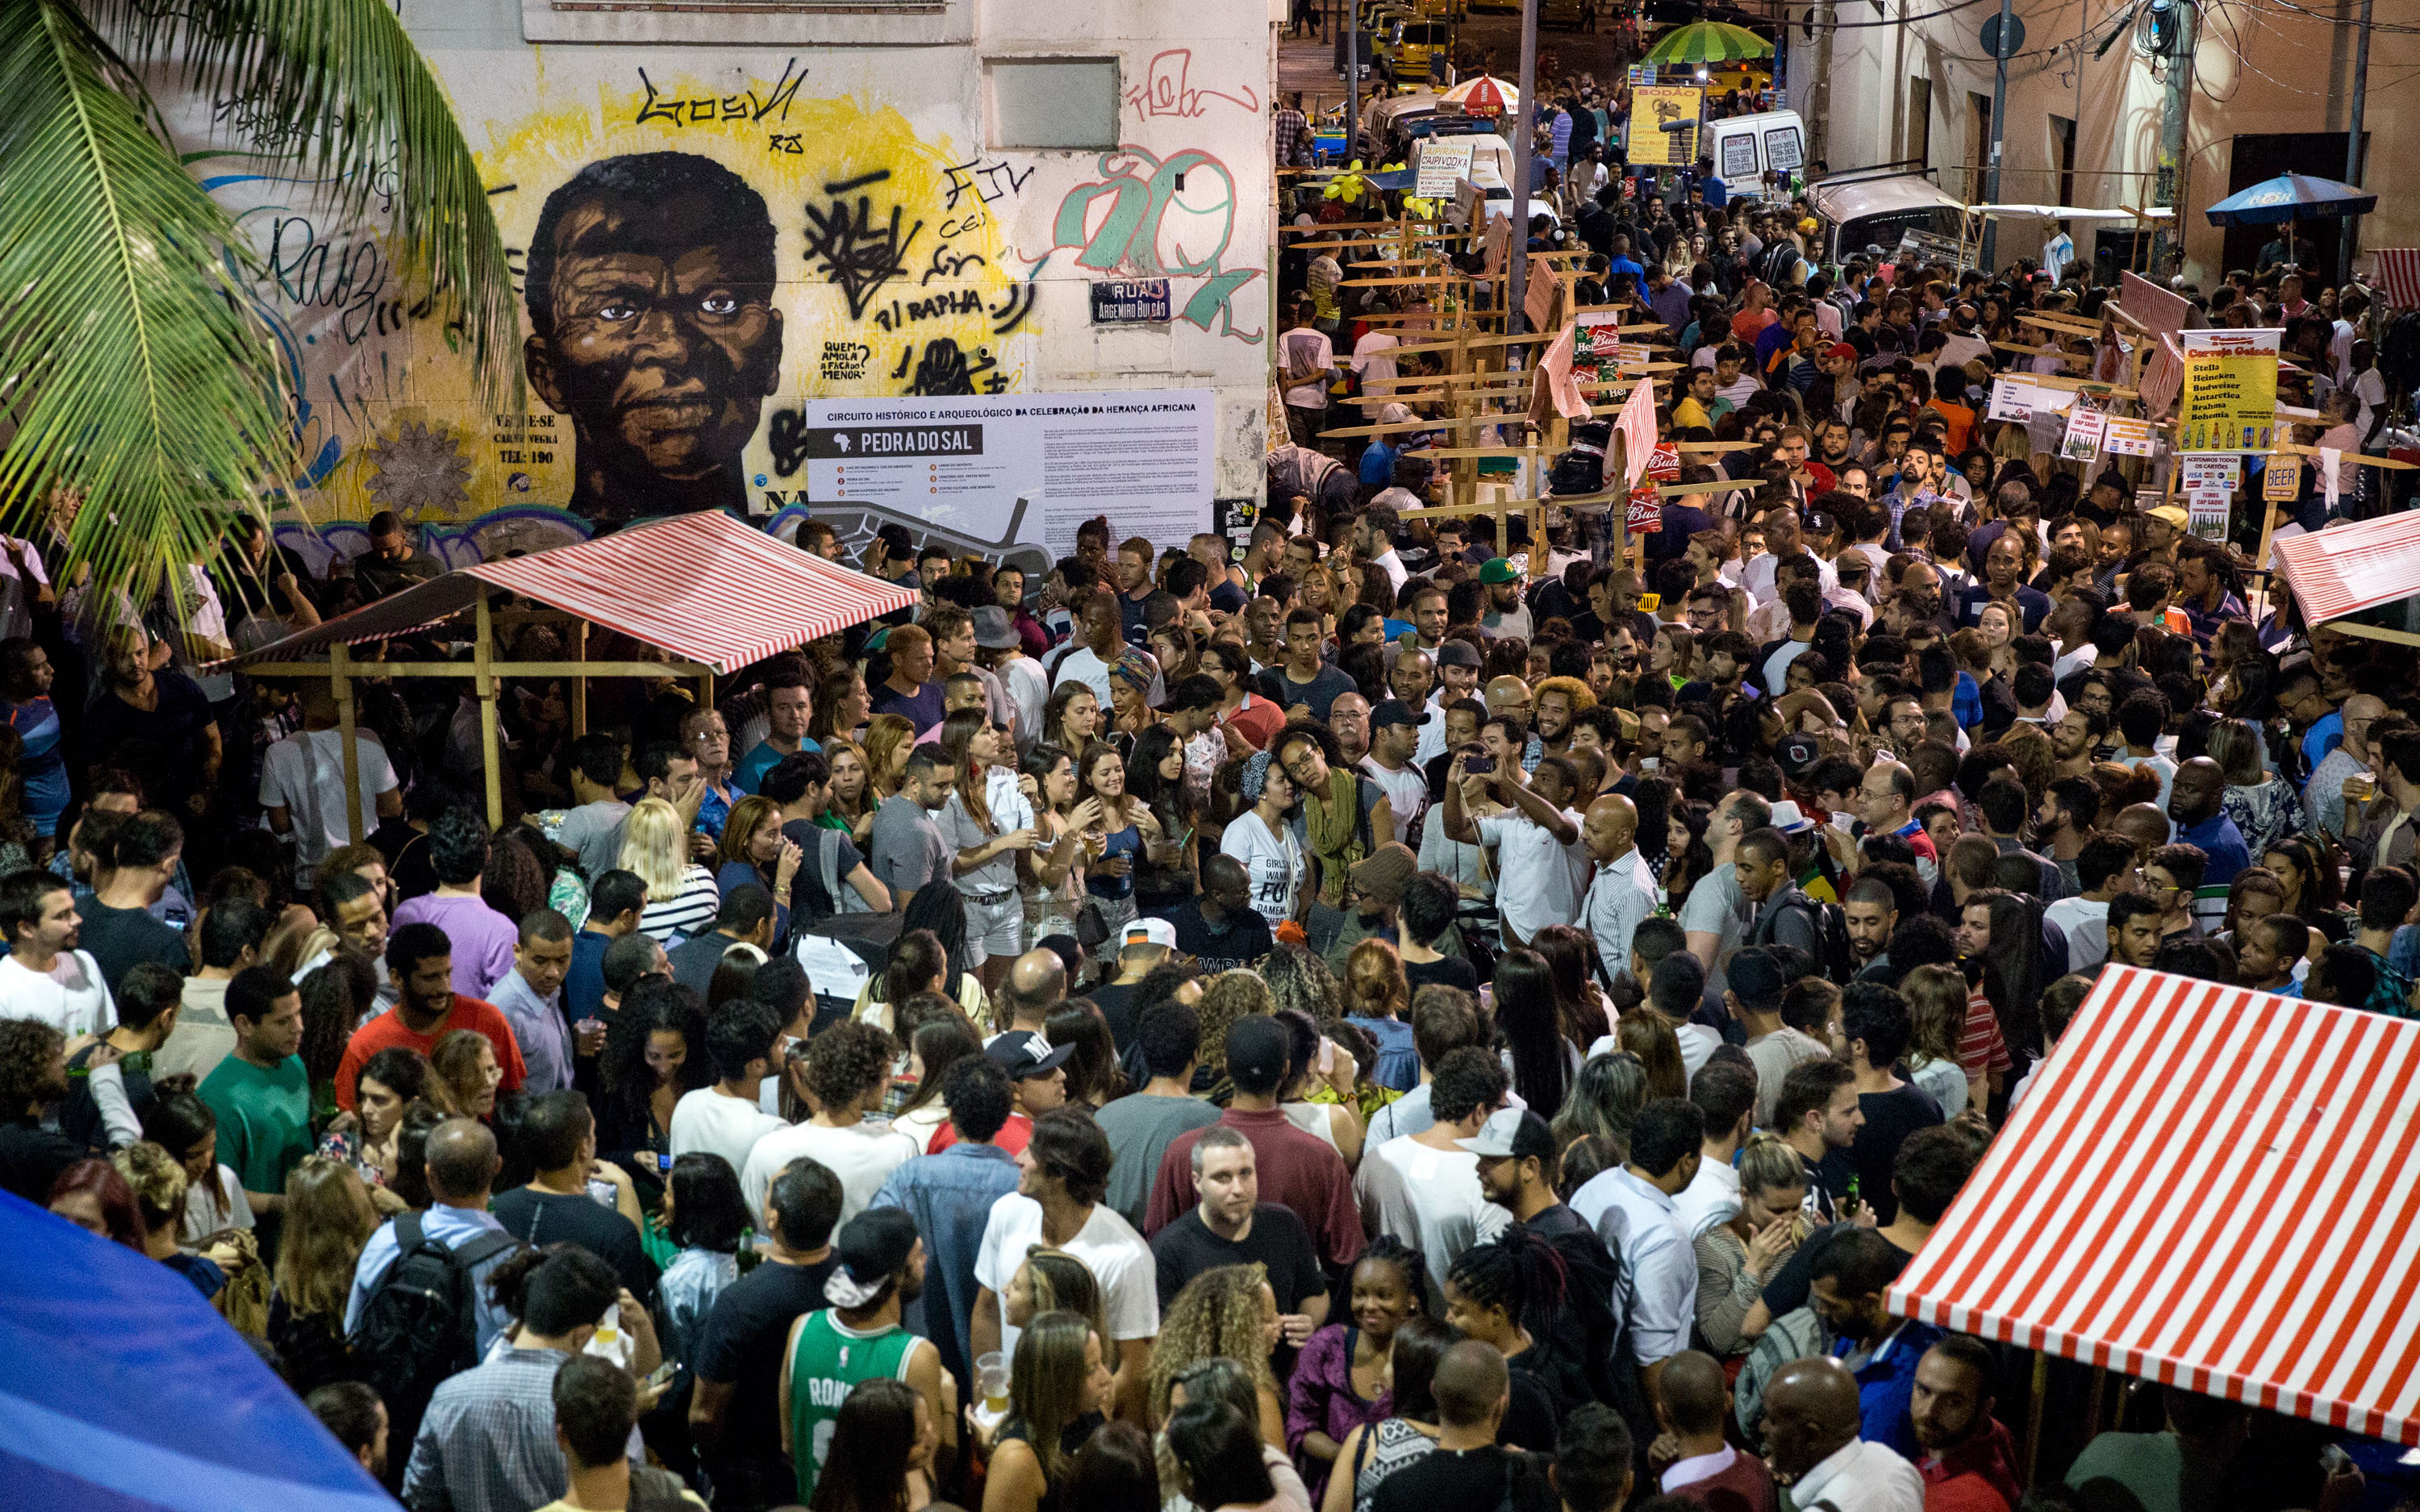 People gather to hear musicians preform samba at Pedro do Sal in Rio de Janeiro on Monday, Aug. 8, 2016.